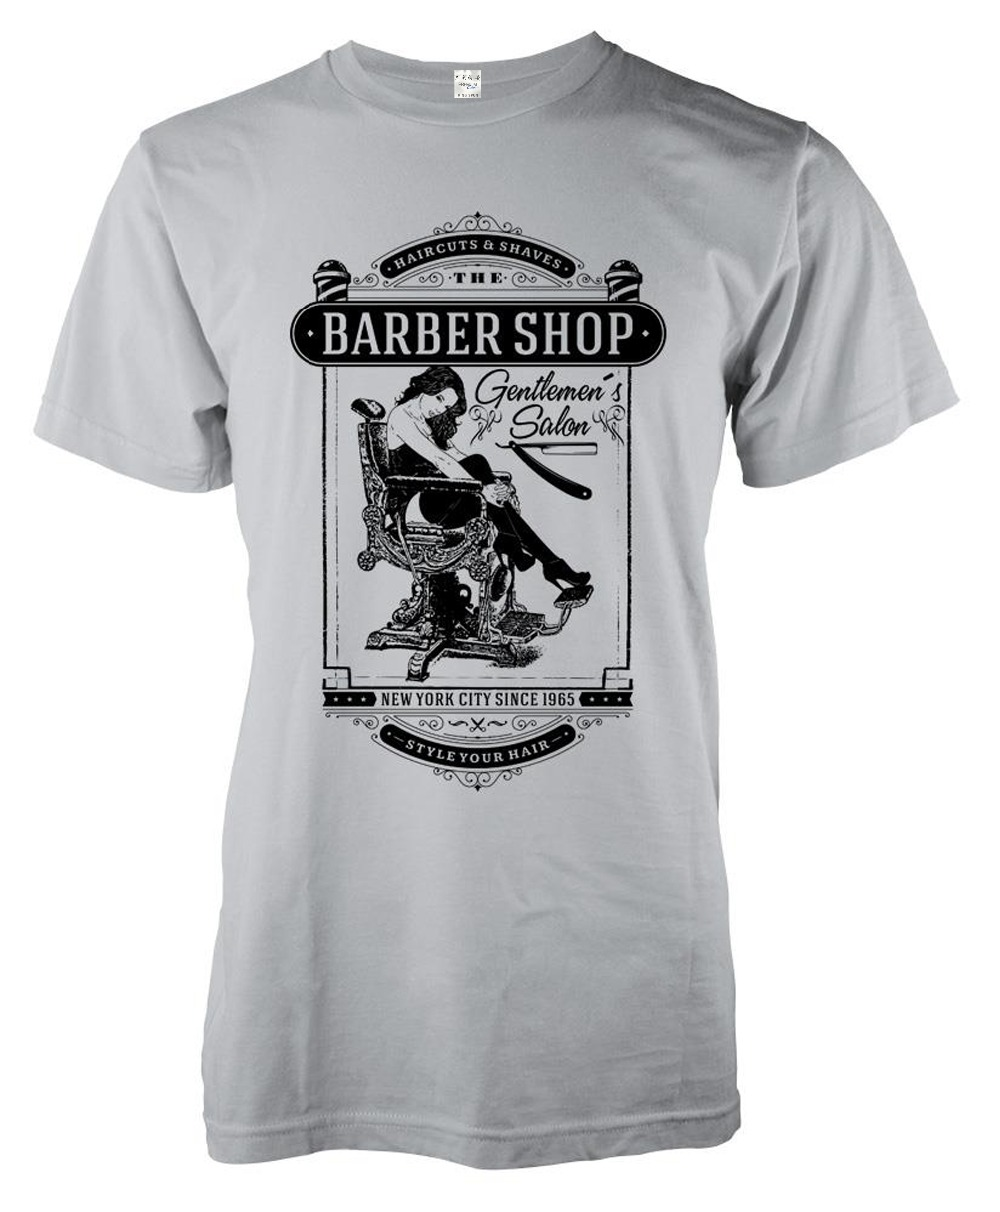 2018 MenS Fashion Brand Clothing Barber Shop Blade Razor Chair Beard Adult Hot Sale 100% Cotton Printing Tee Shirt